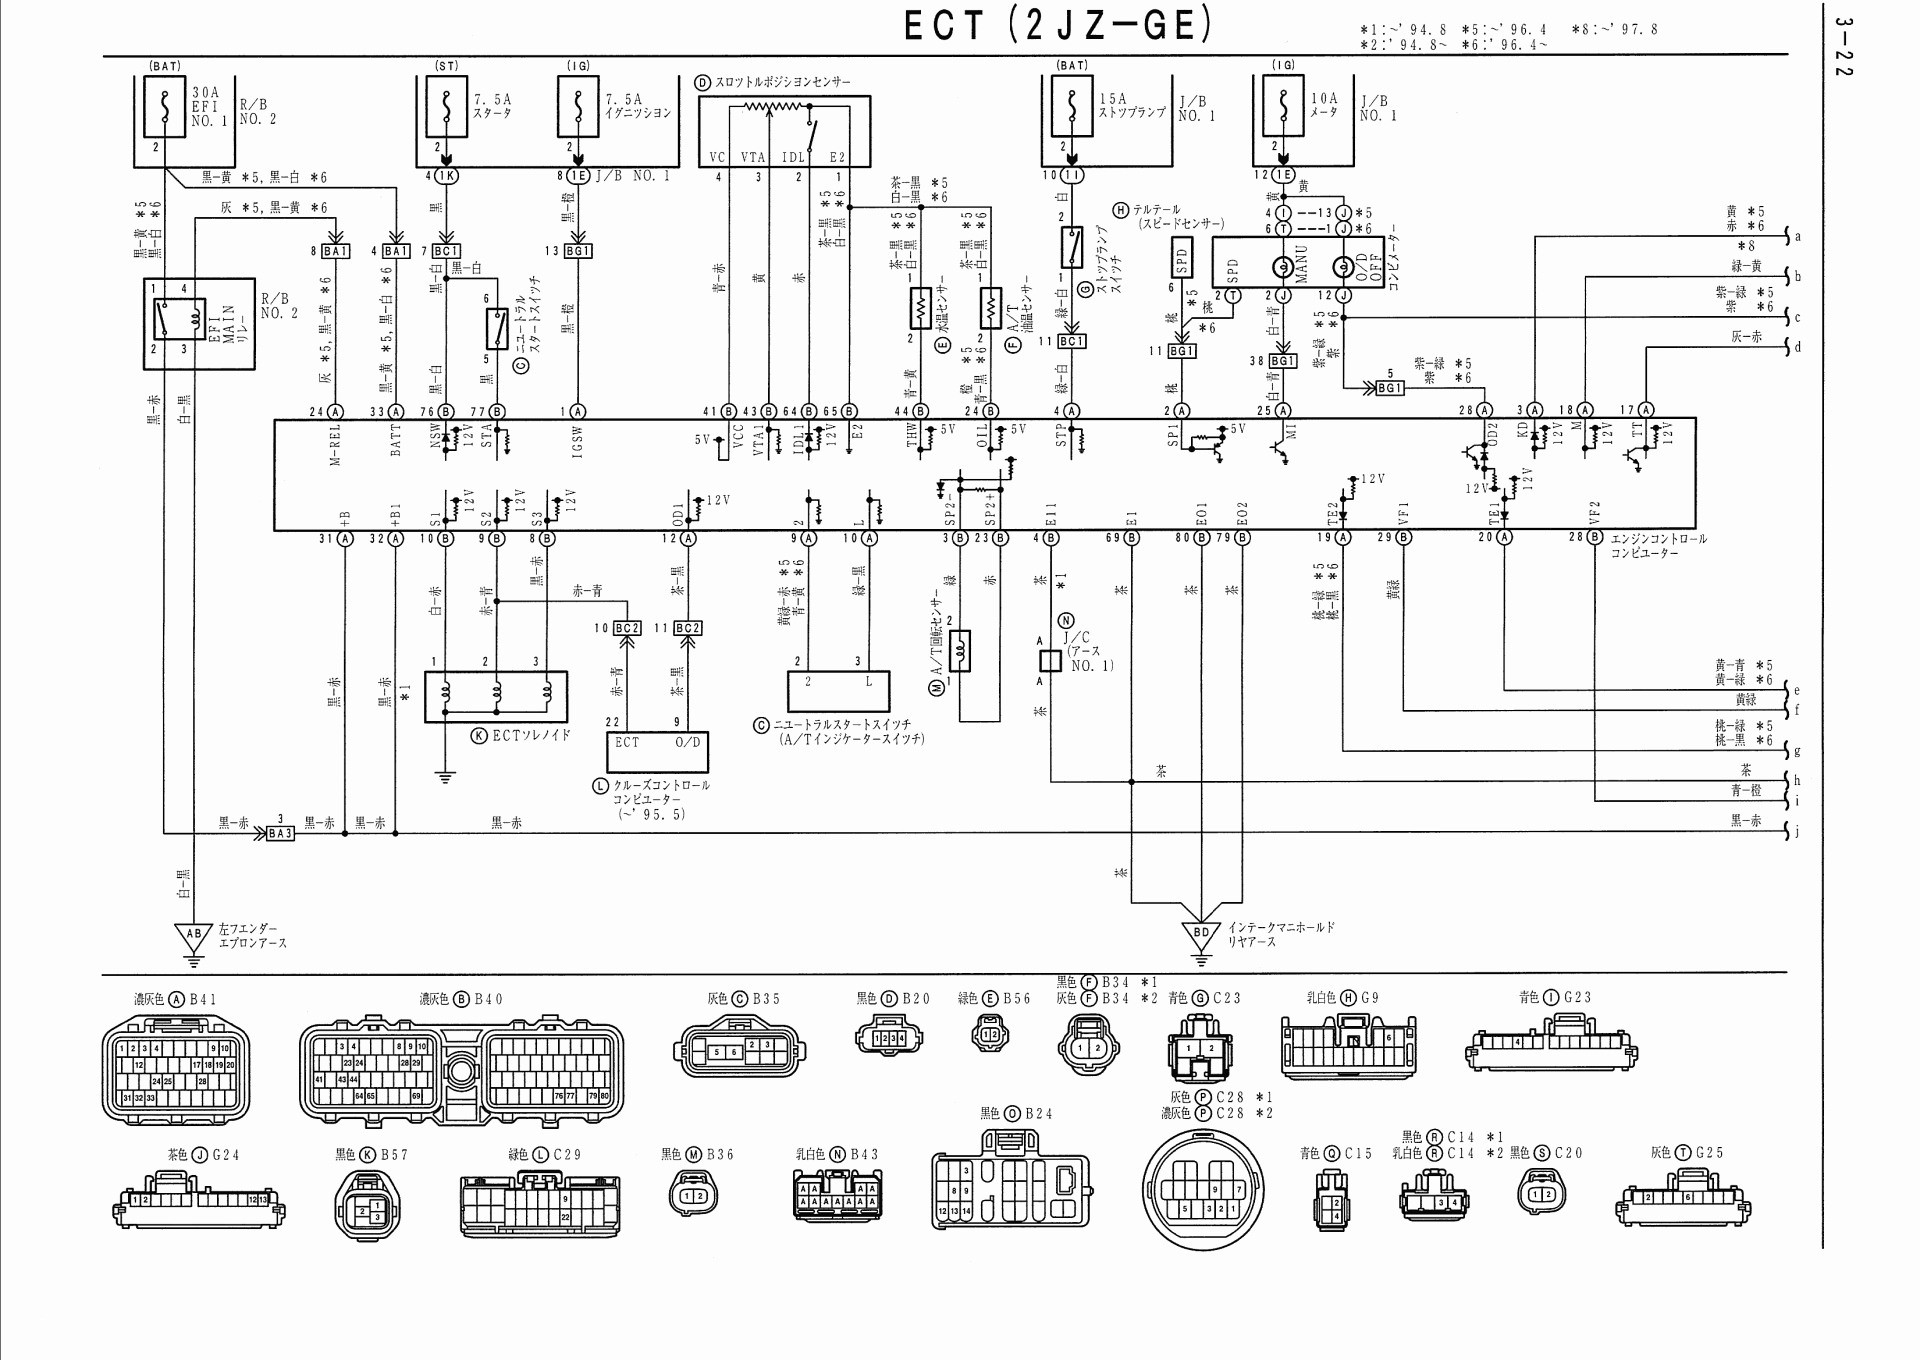 1999 Bmw Z3 Dash Lighting Wiring Diagram - Home Wiring Diagrams Under Dash Wiring Diagram Lighting on